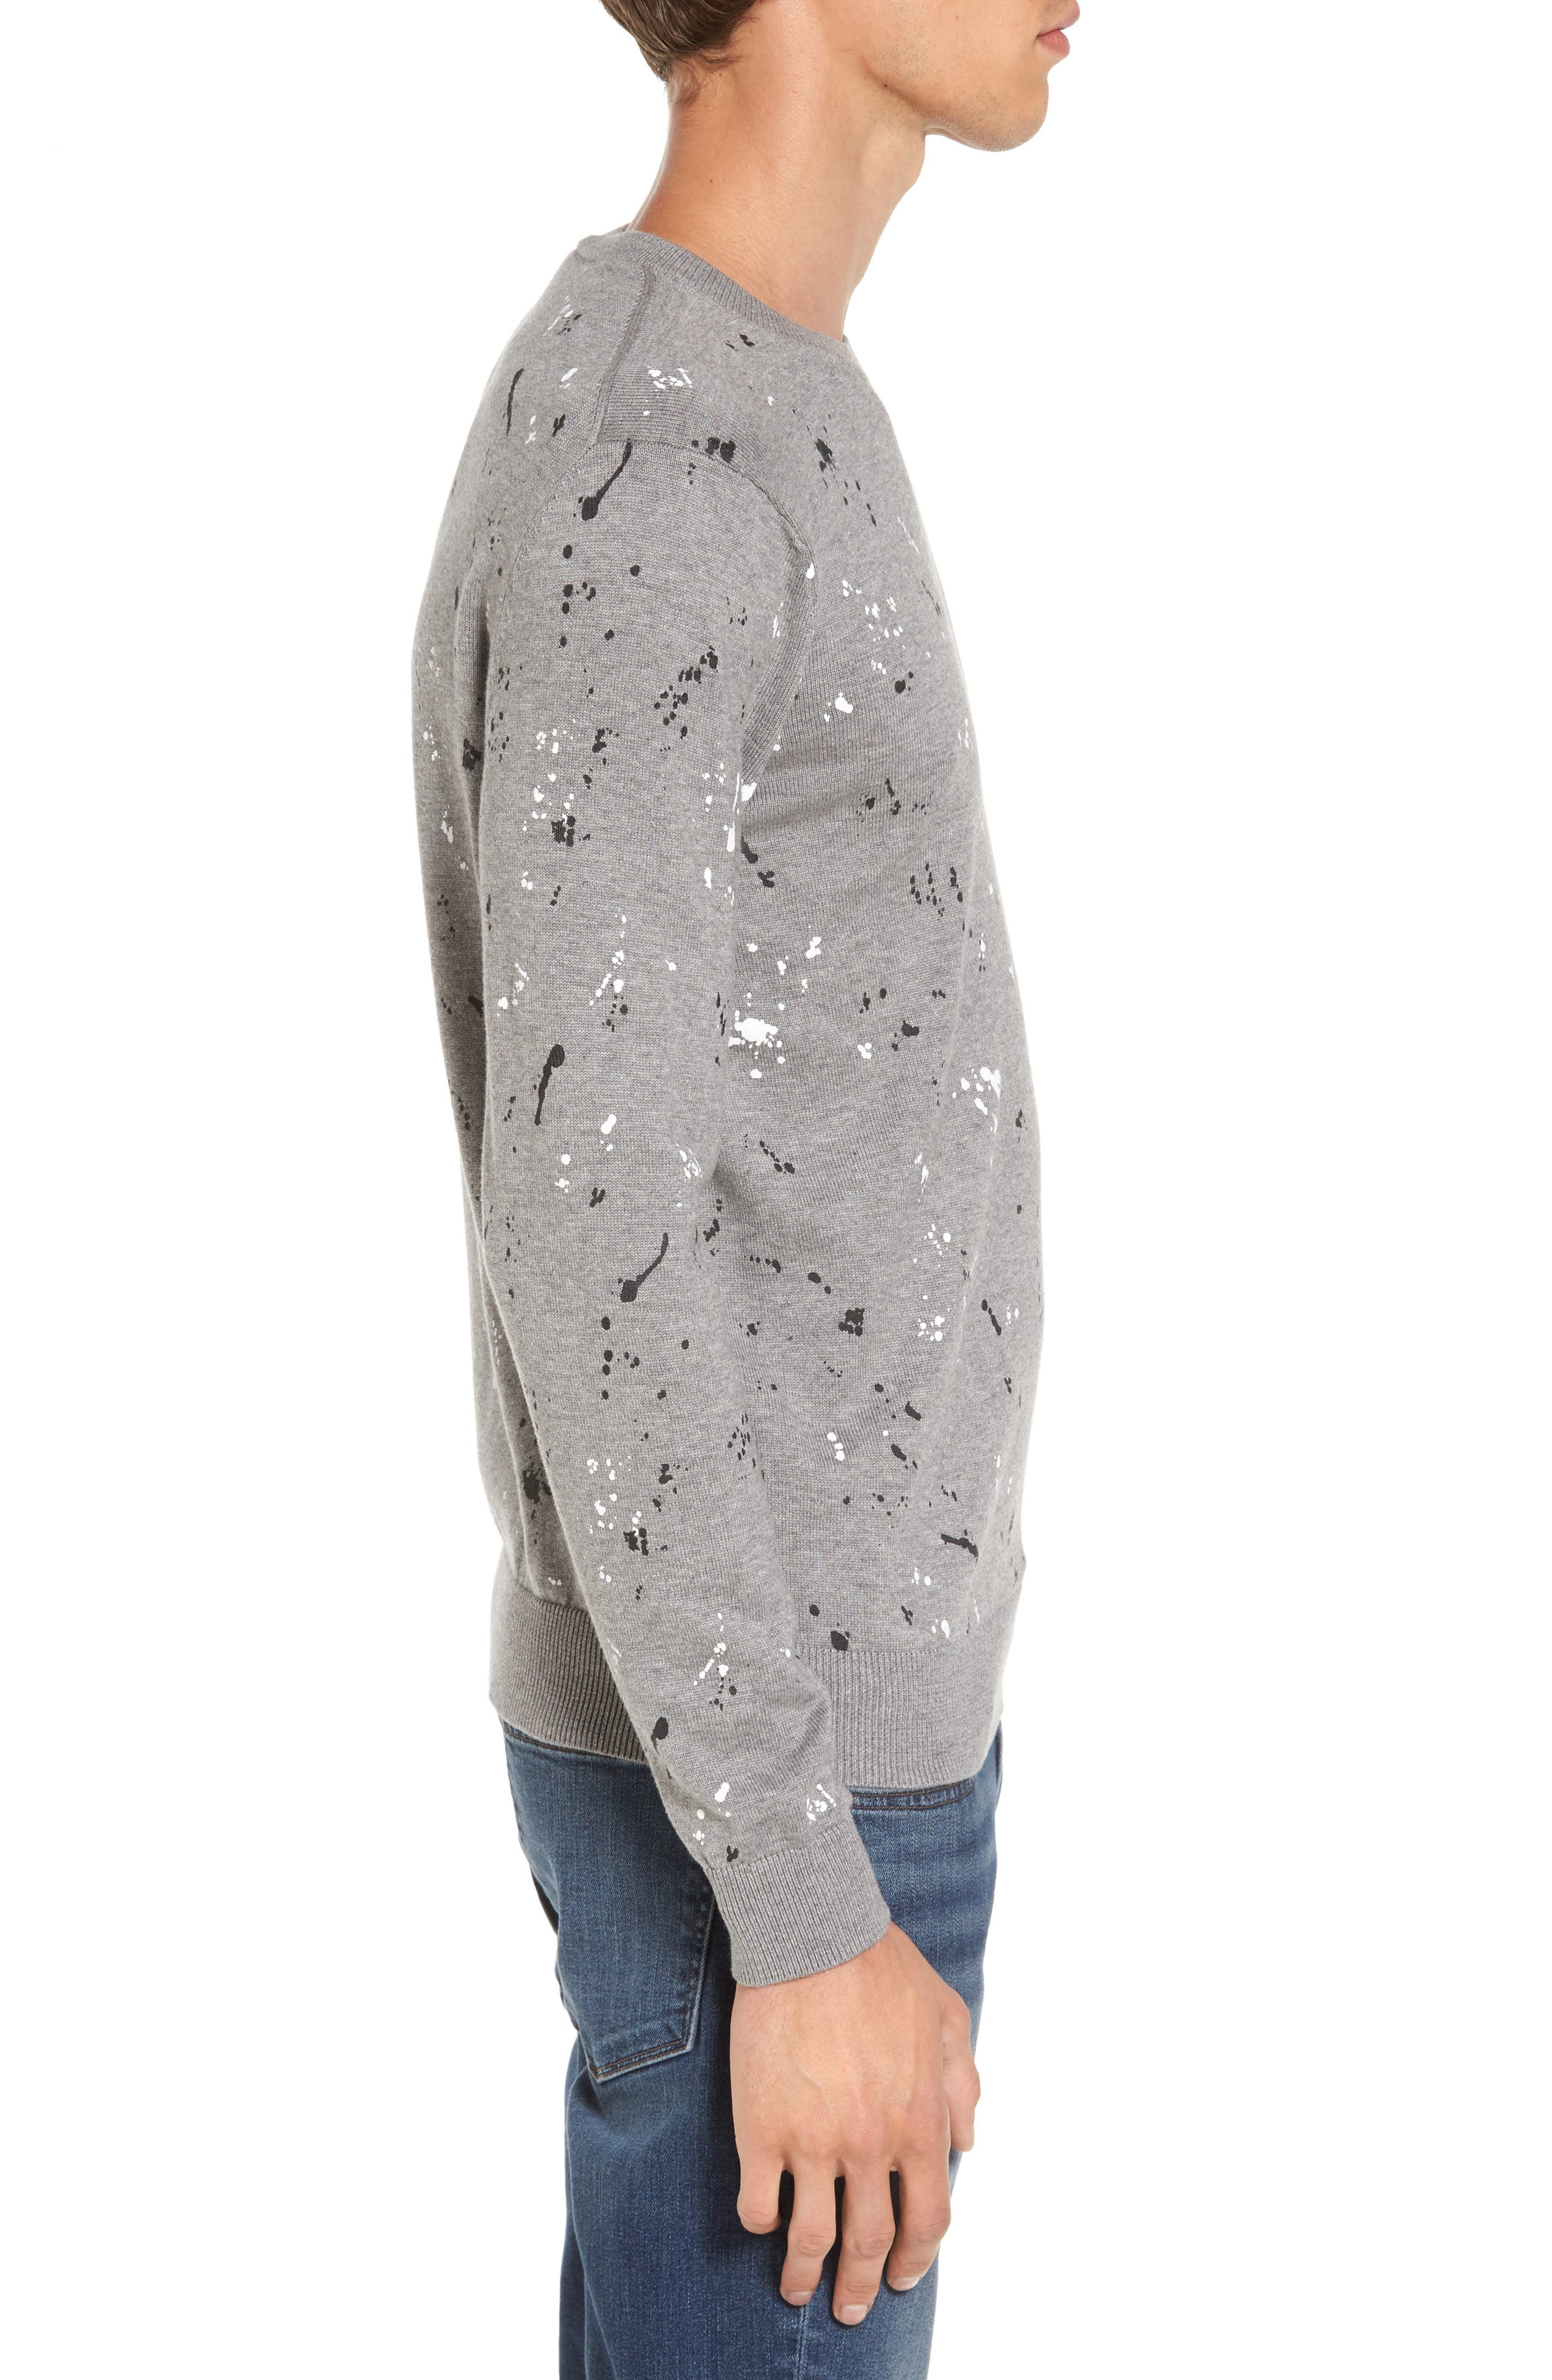 Splatter Sweater,                             Alternate thumbnail 3, color,                             Sru Palladium Mouline